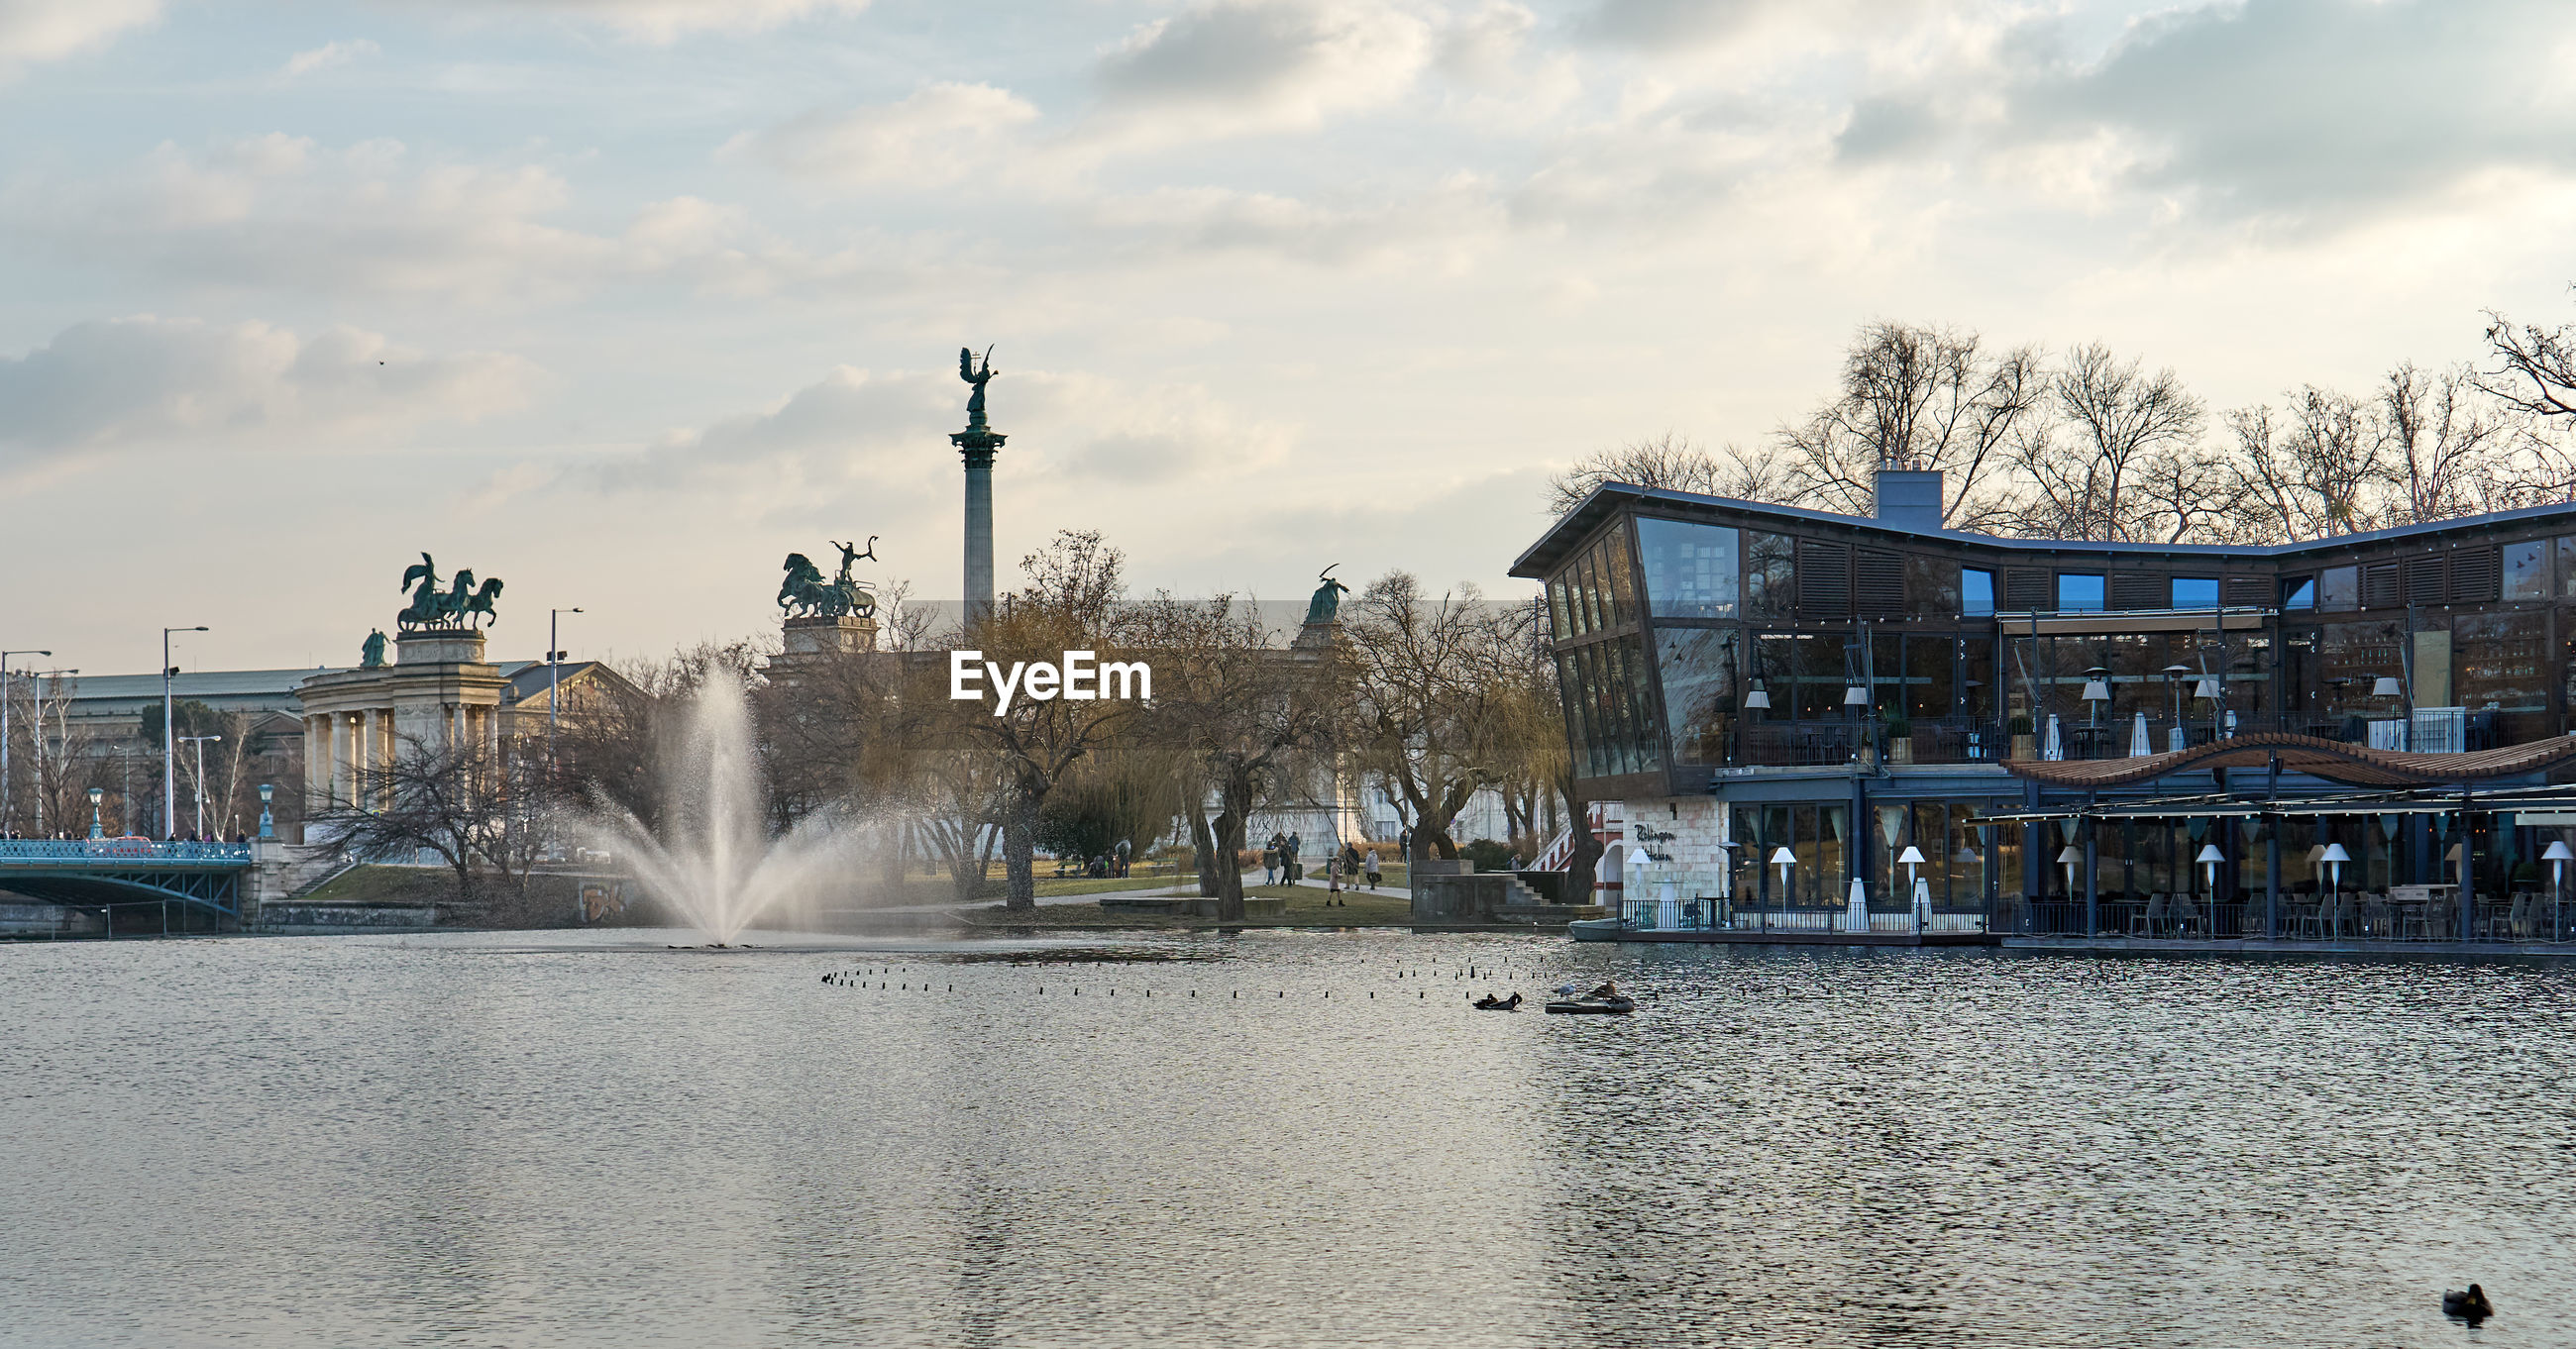 FOUNTAIN IN LAKE AGAINST BUILDINGS IN CITY